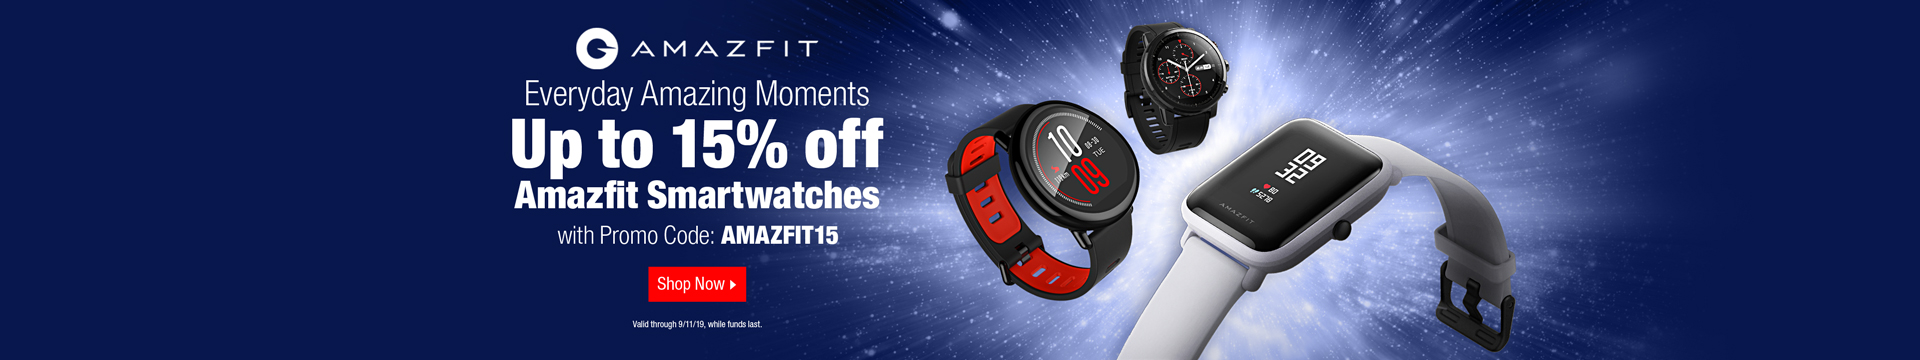 Up to 15% off Amazfit